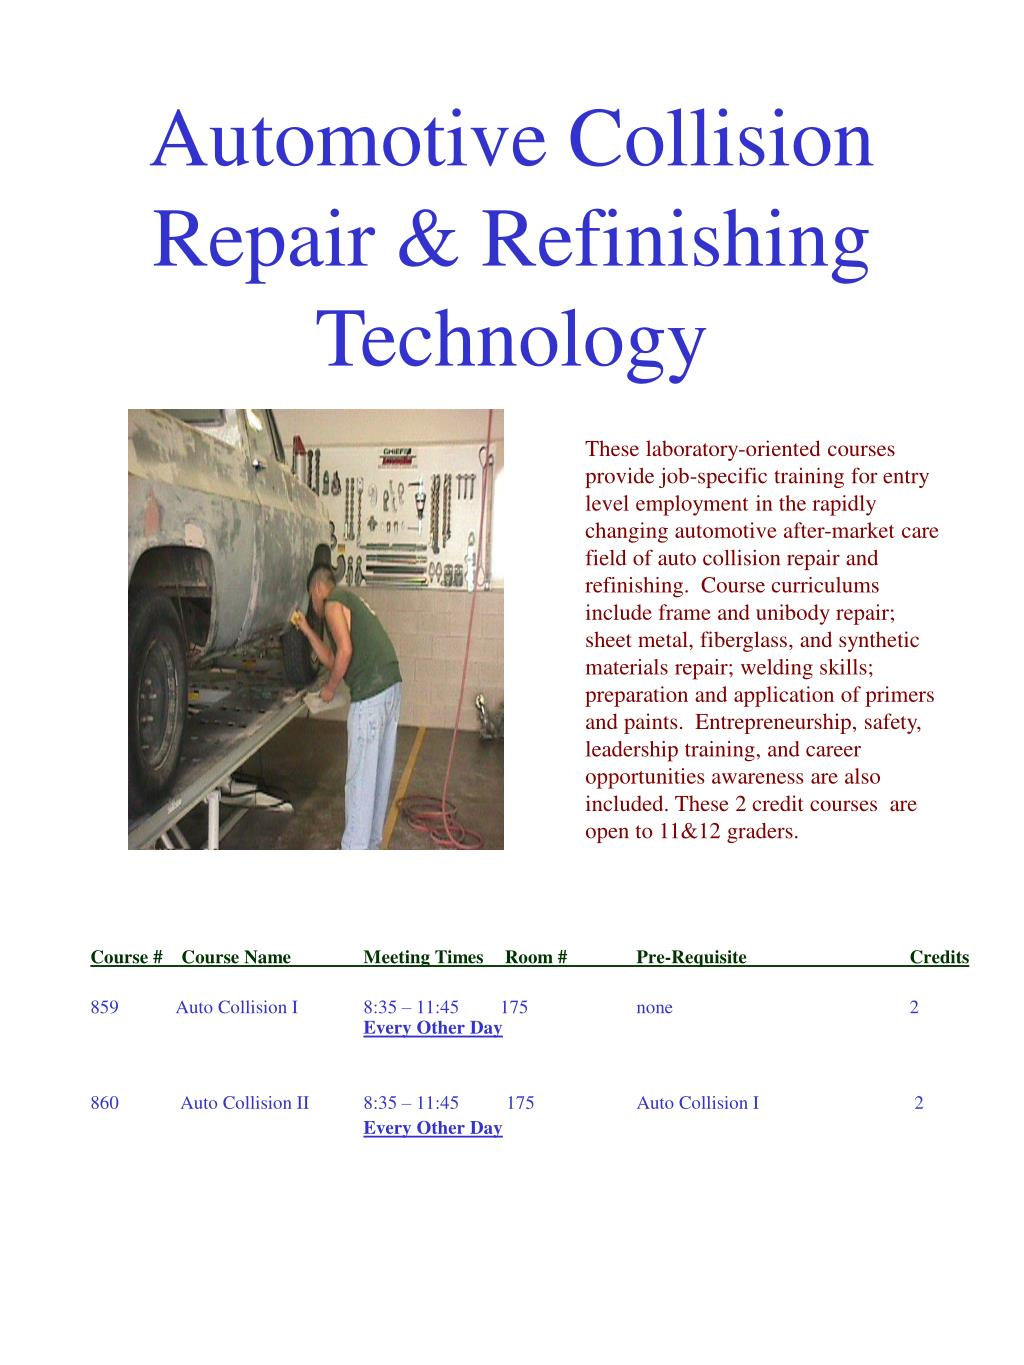 Automotive Collision Repair & Refinishing Technology